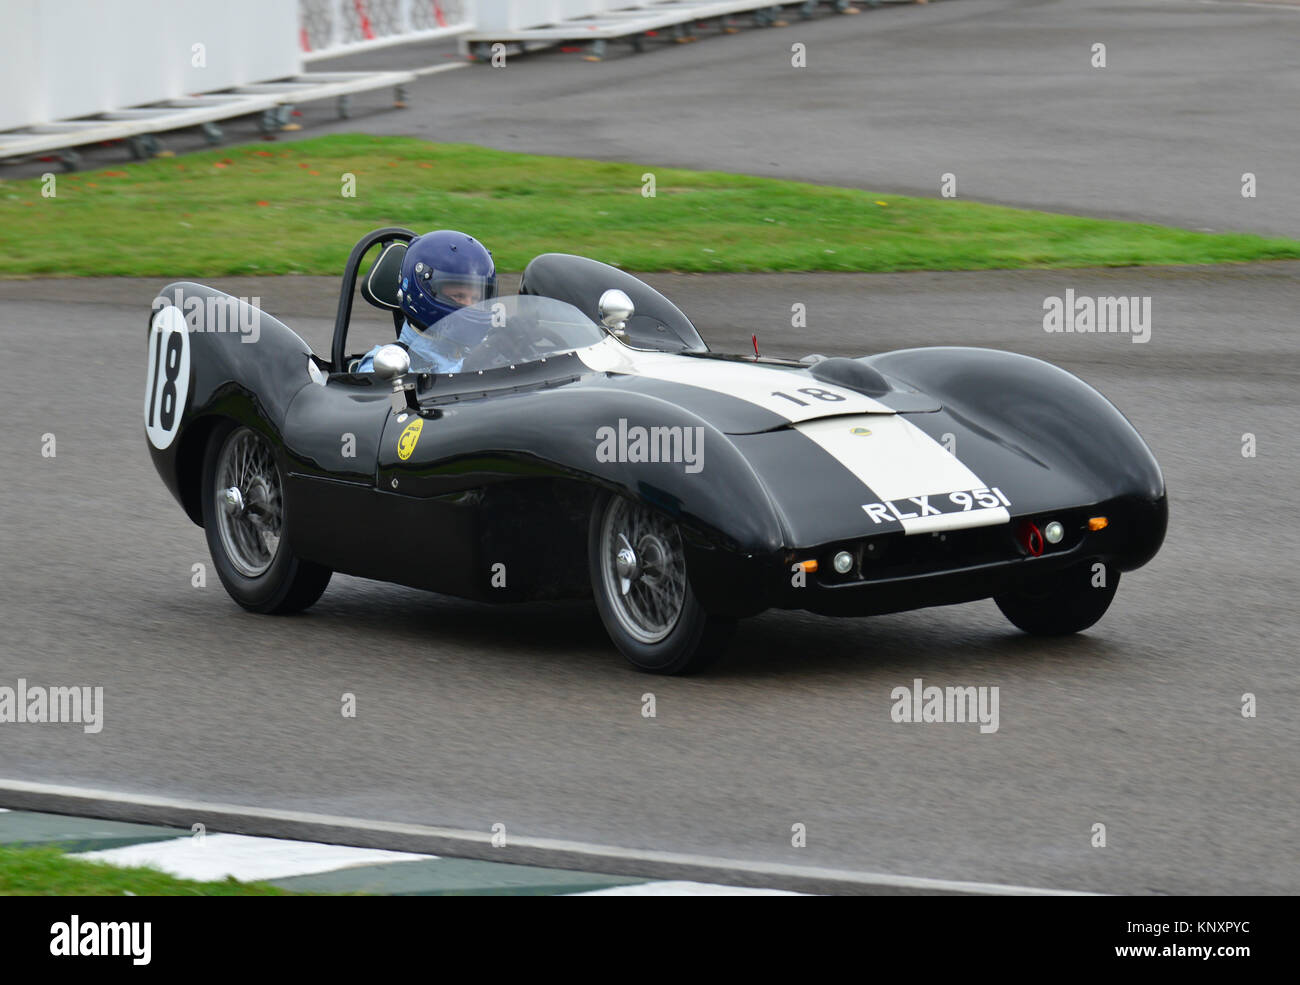 PLX 951, Nick Fennell, Lotus Climax Mk IX, Goodwood Revival 2013, Madgwick Cup Stock Photo